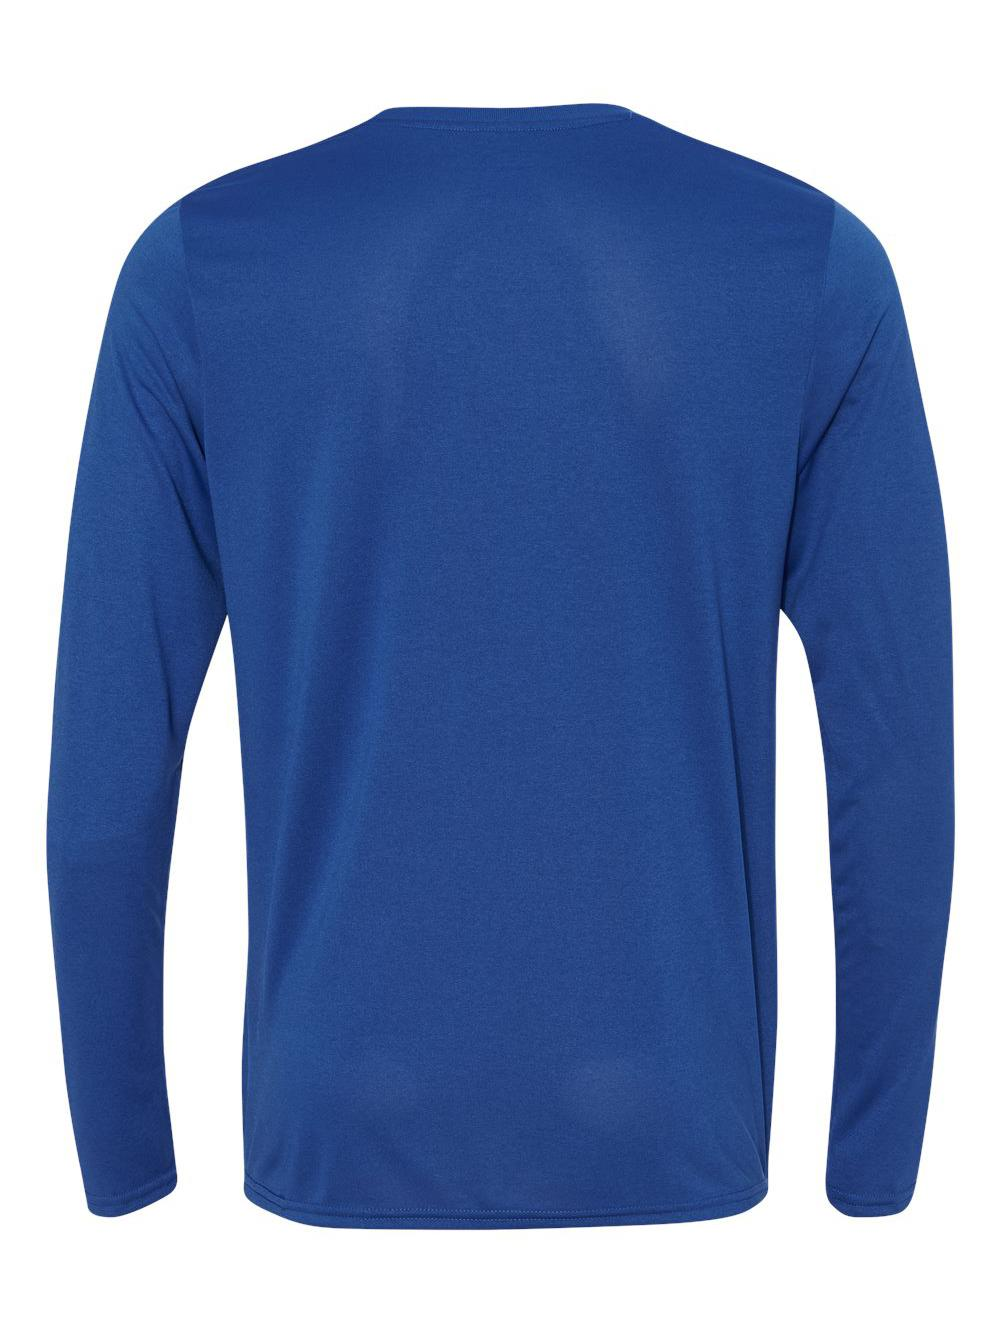 Gildan-Tech-Performance-Long-Sleeve-T-Shirt-47400 thumbnail 19